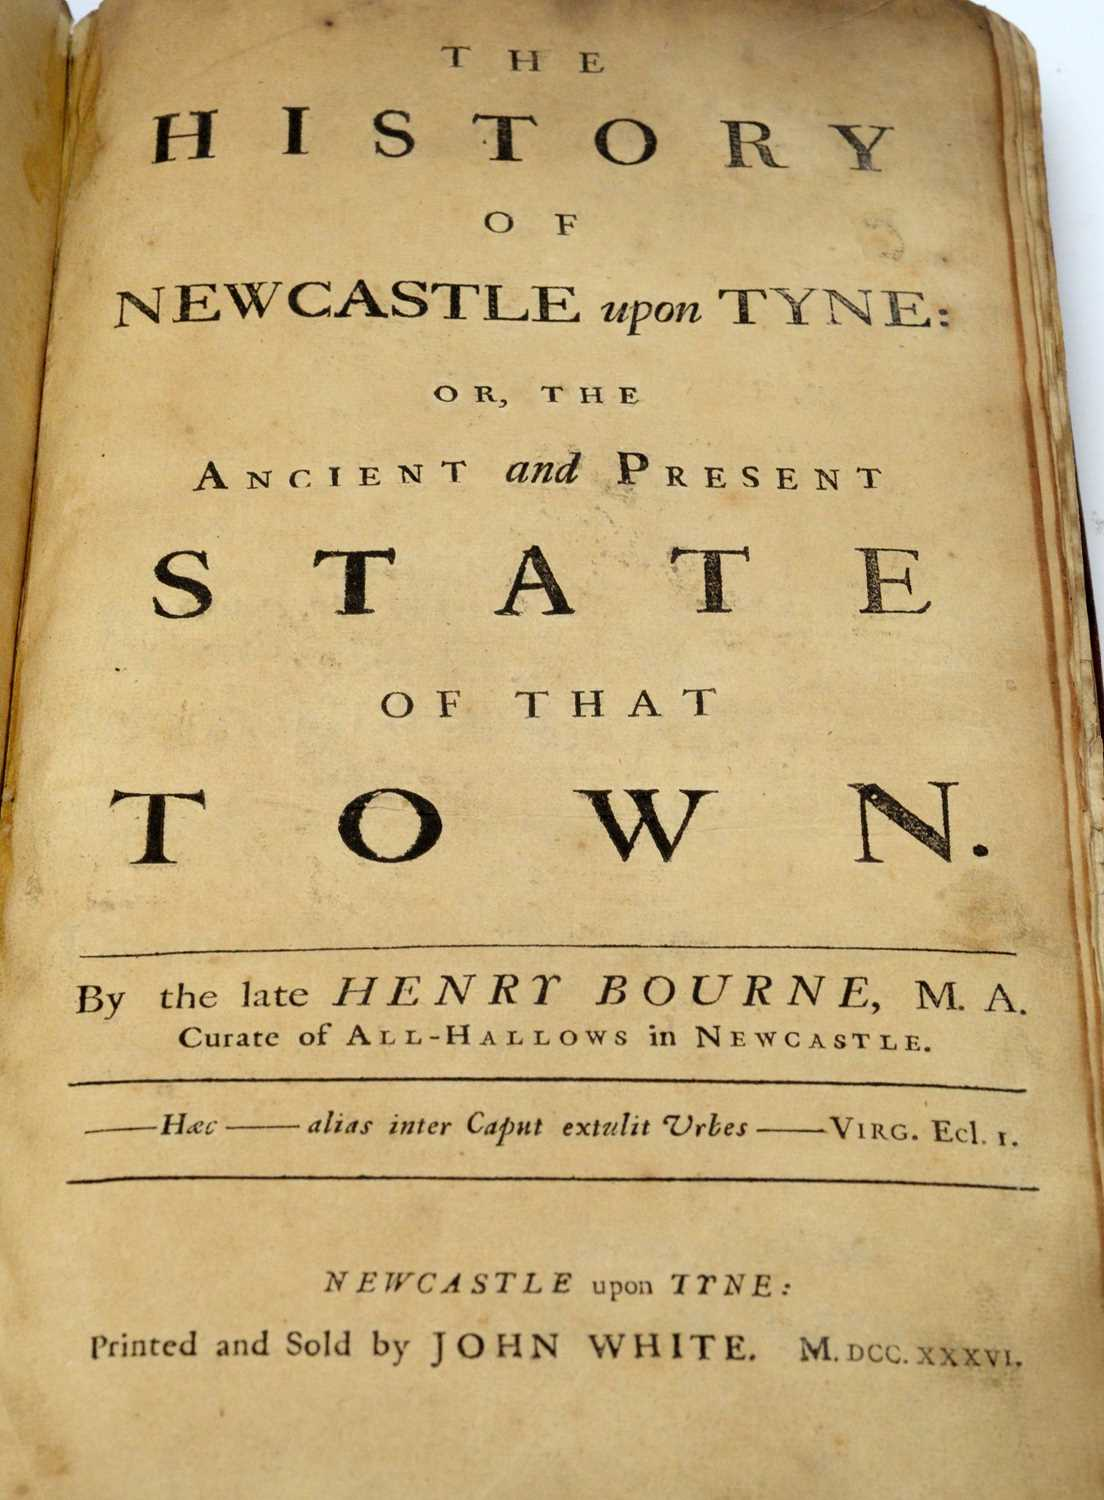 Bourne (Henry), The History of Newcastle upon Tyne, - Image 2 of 3